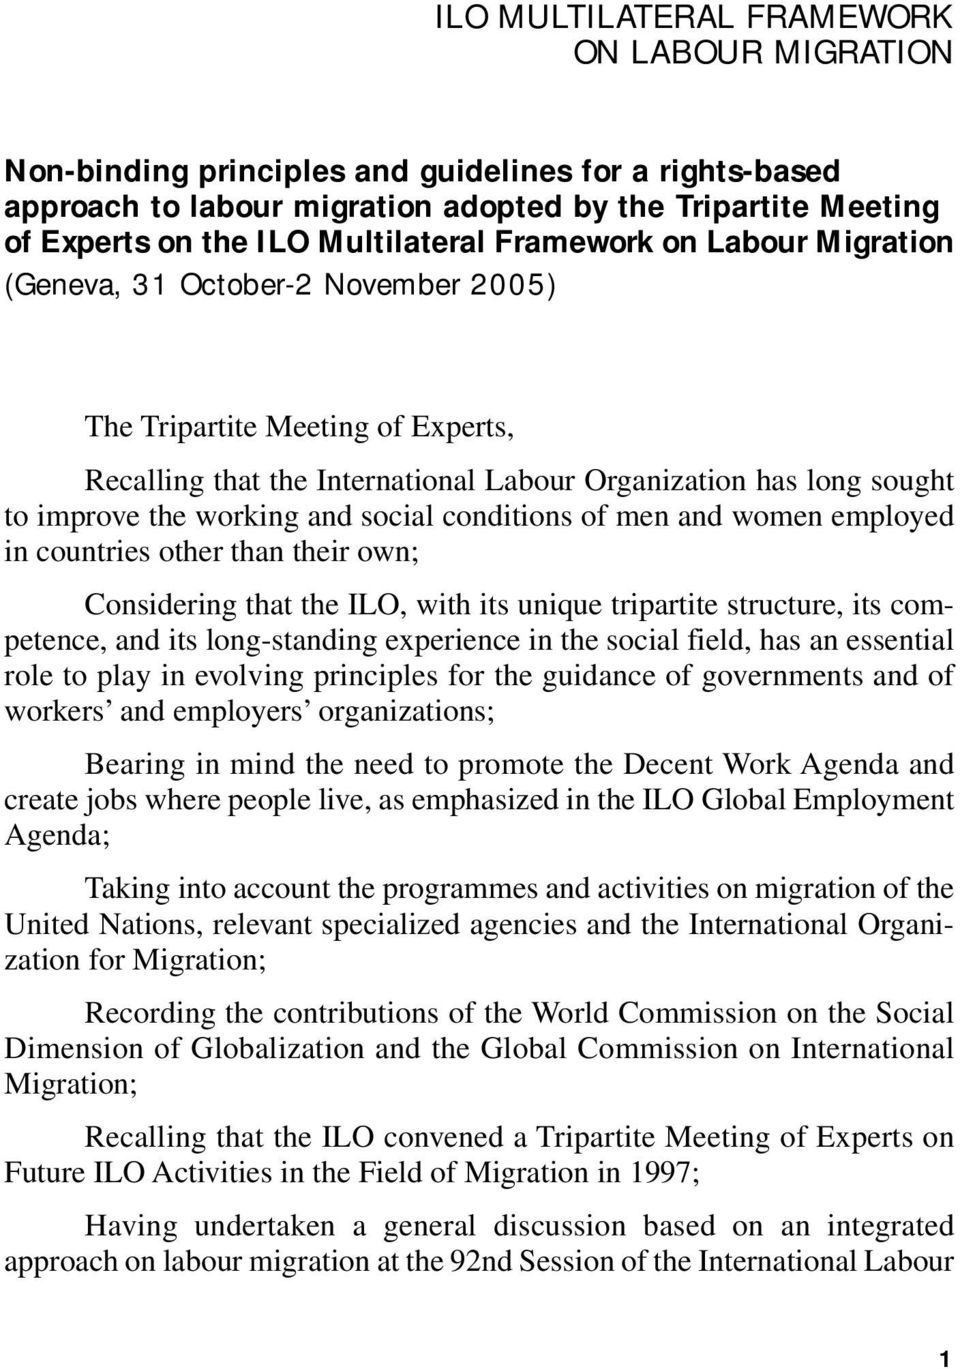 working and social conditions of men and women employed in countries other than their own; Considering that the ILO, with its unique tripartite structure, its competence, and its long-standing